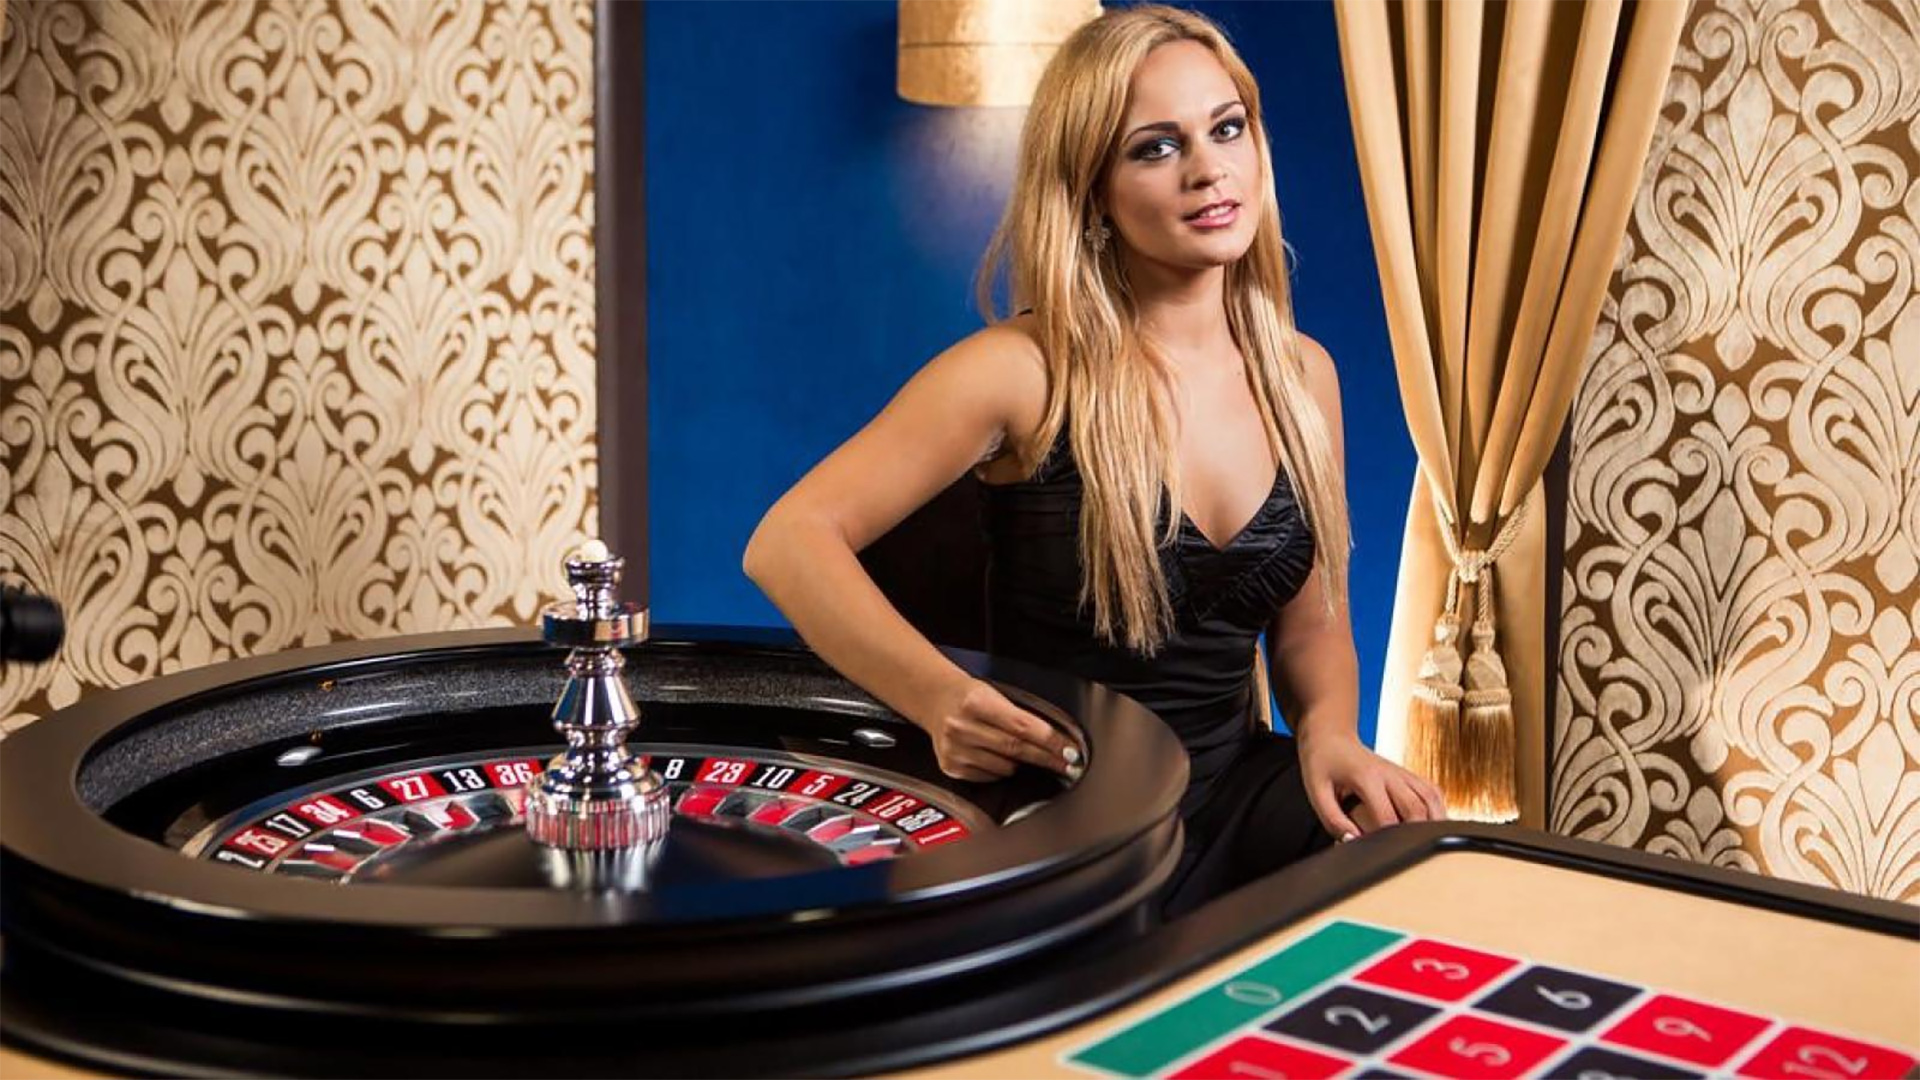 Live roulette allows you to feel like you are in a traditional casino